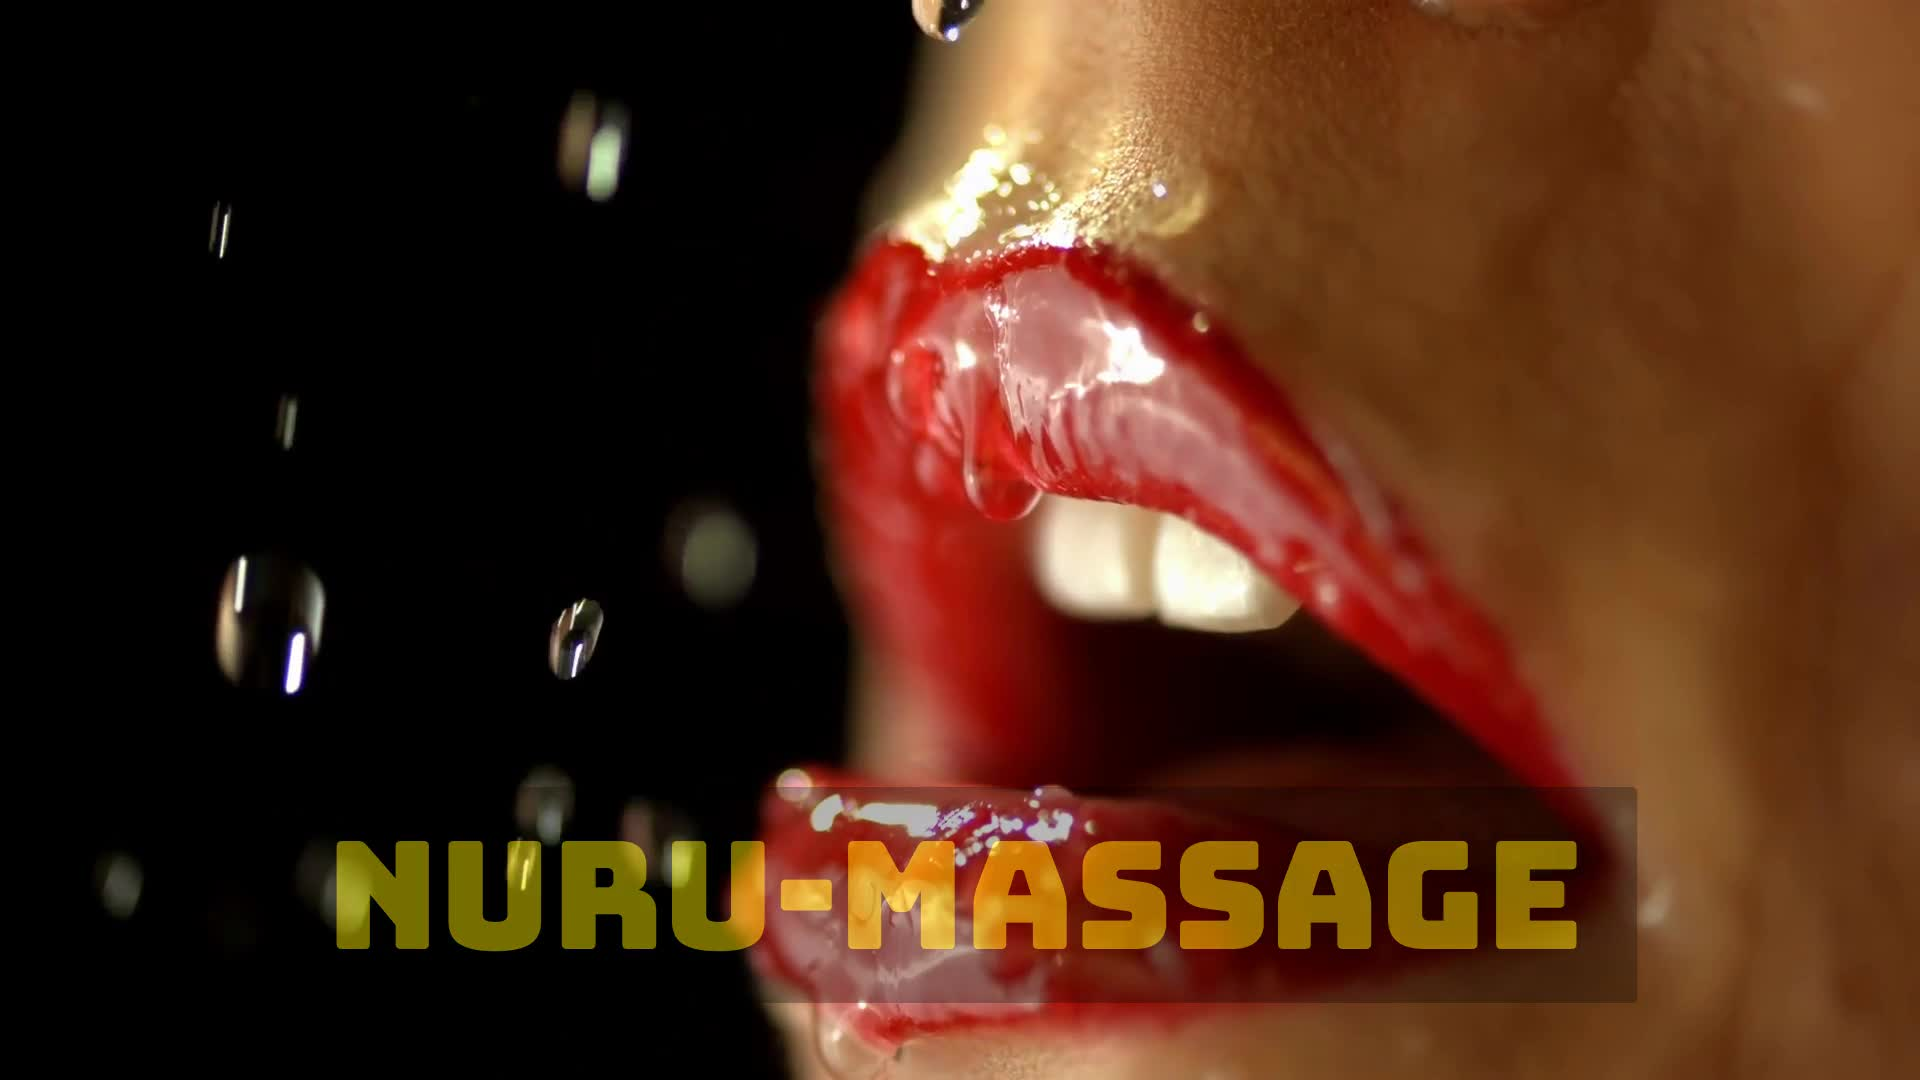 Lina 💦 ASIA MASSAGE 💦 Sinnliche Massage Zurich Area, Swiss German Area, Schwyz